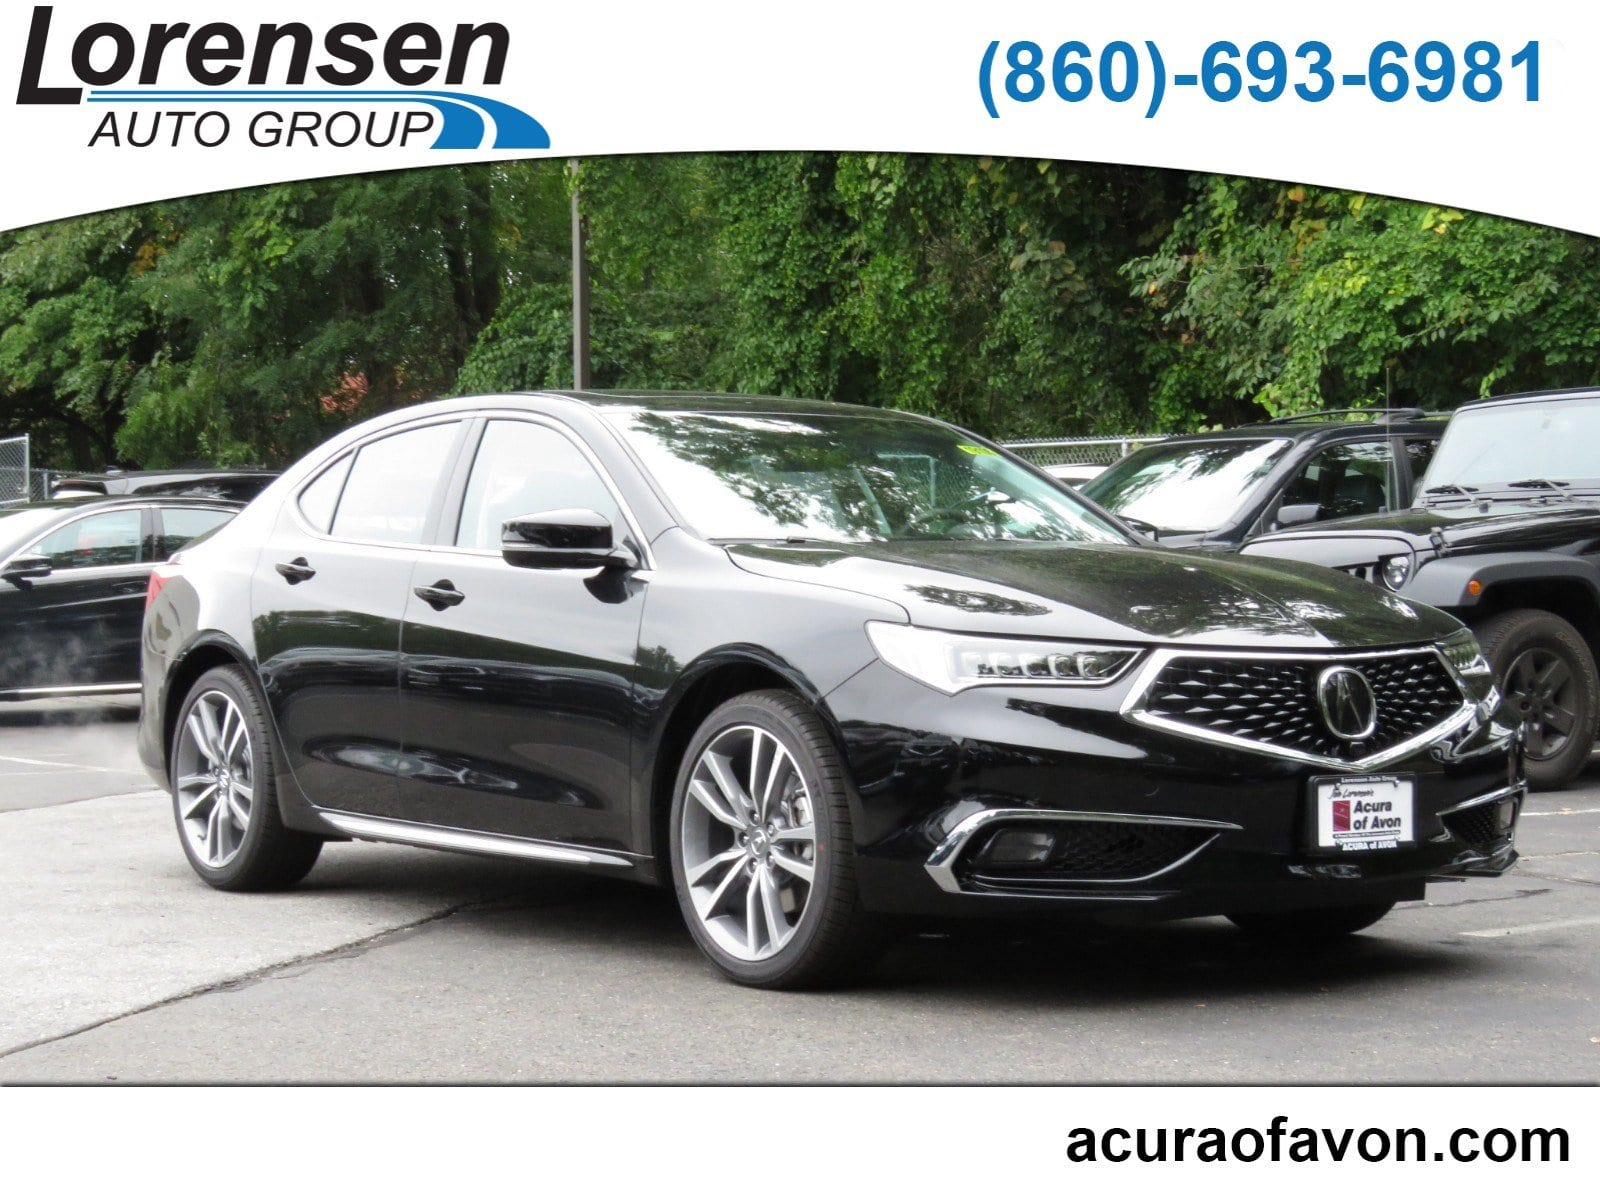 New 2019 Acura TLX 3 5 V 6 9 AT SH AWD with Advance Package Sedan in